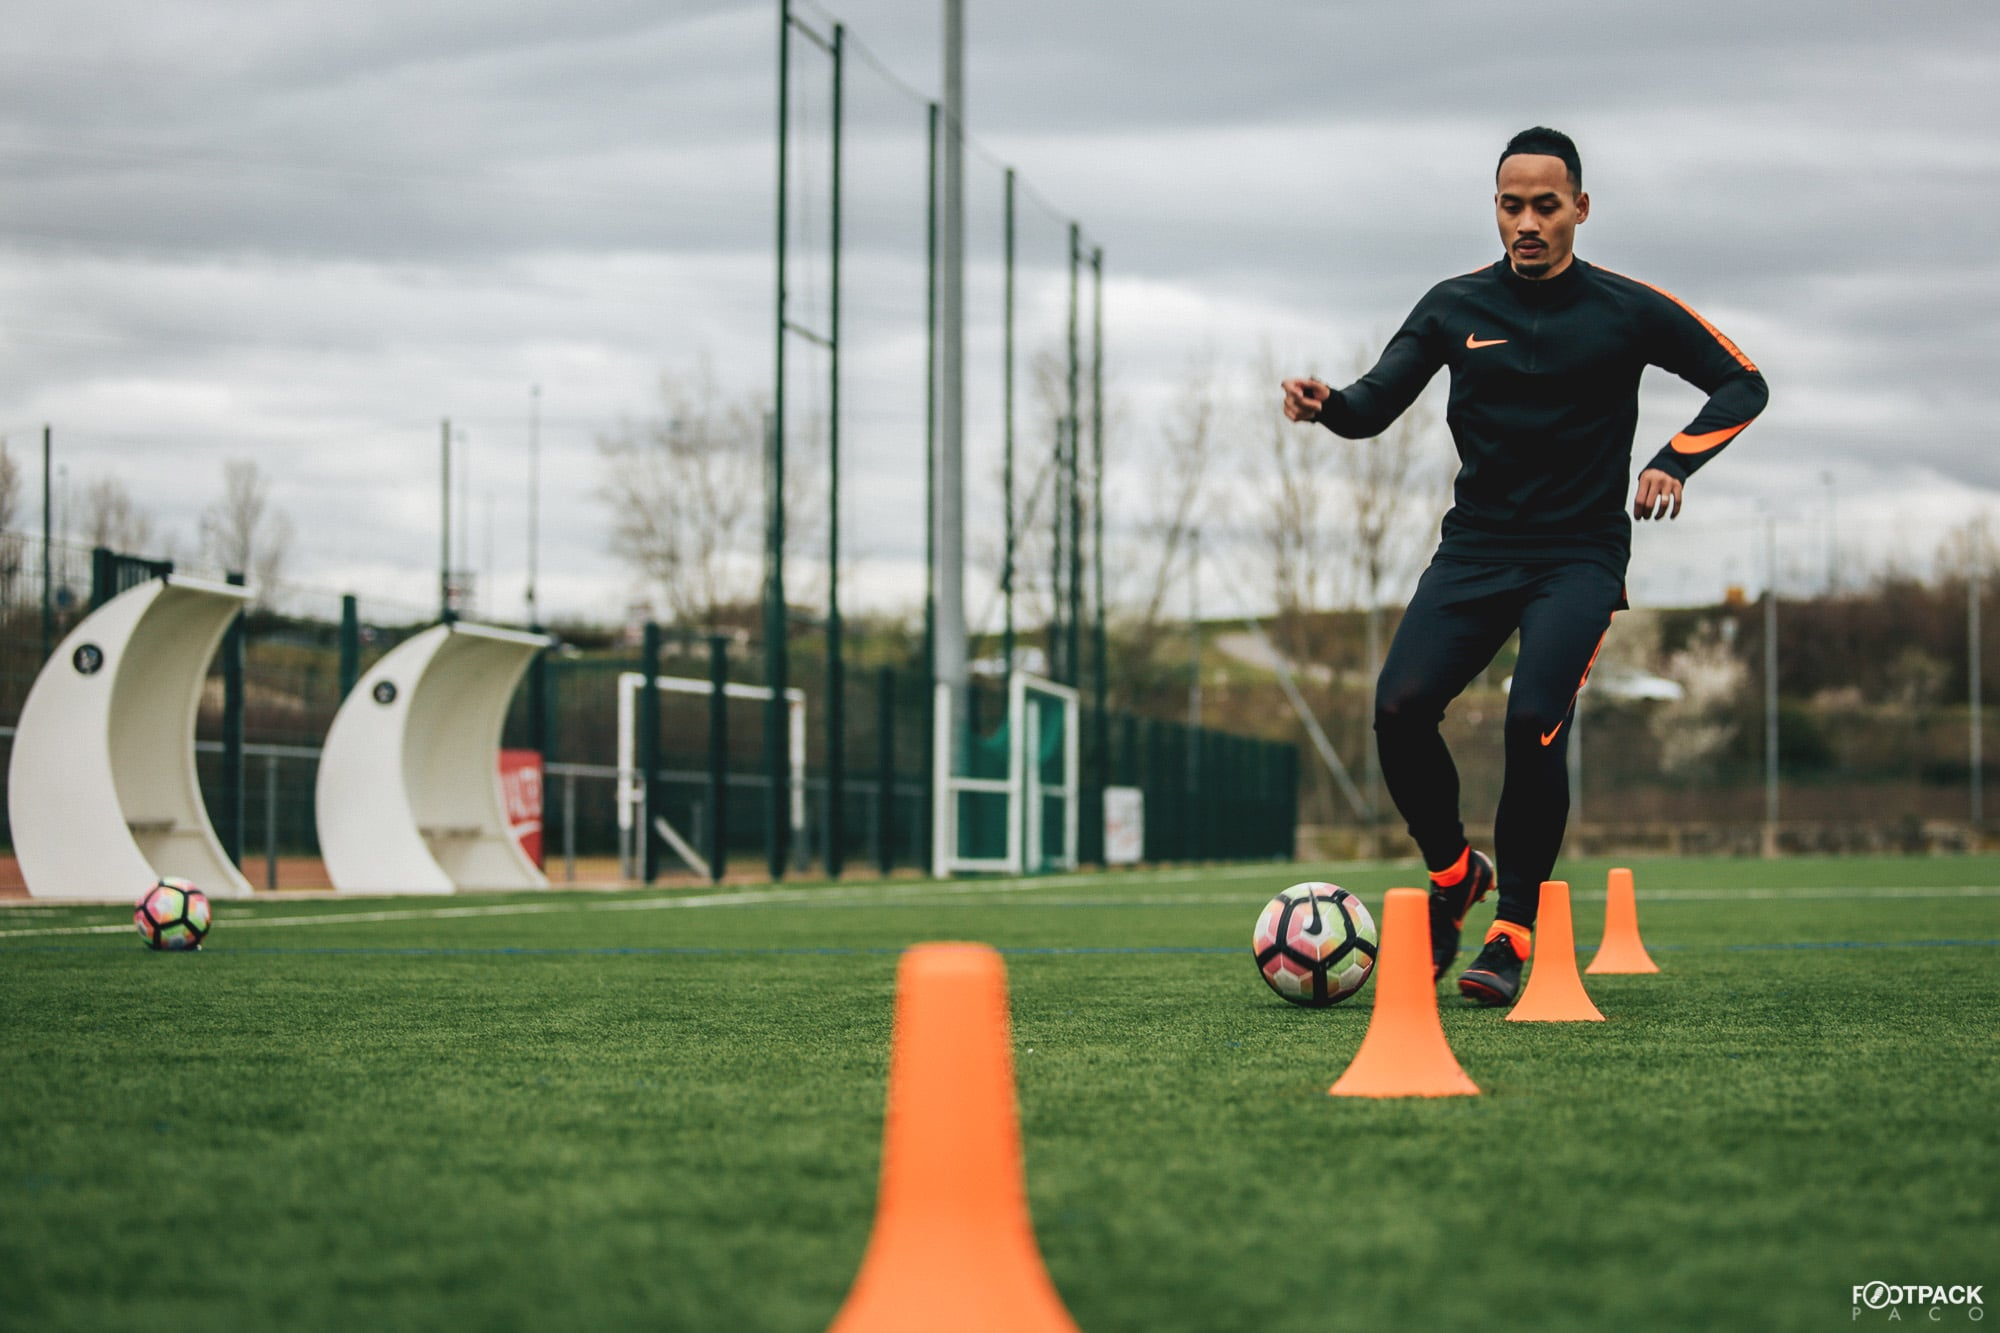 chaussure-football-Nike-Mercurial-360-Elite-test-Footpack-img3